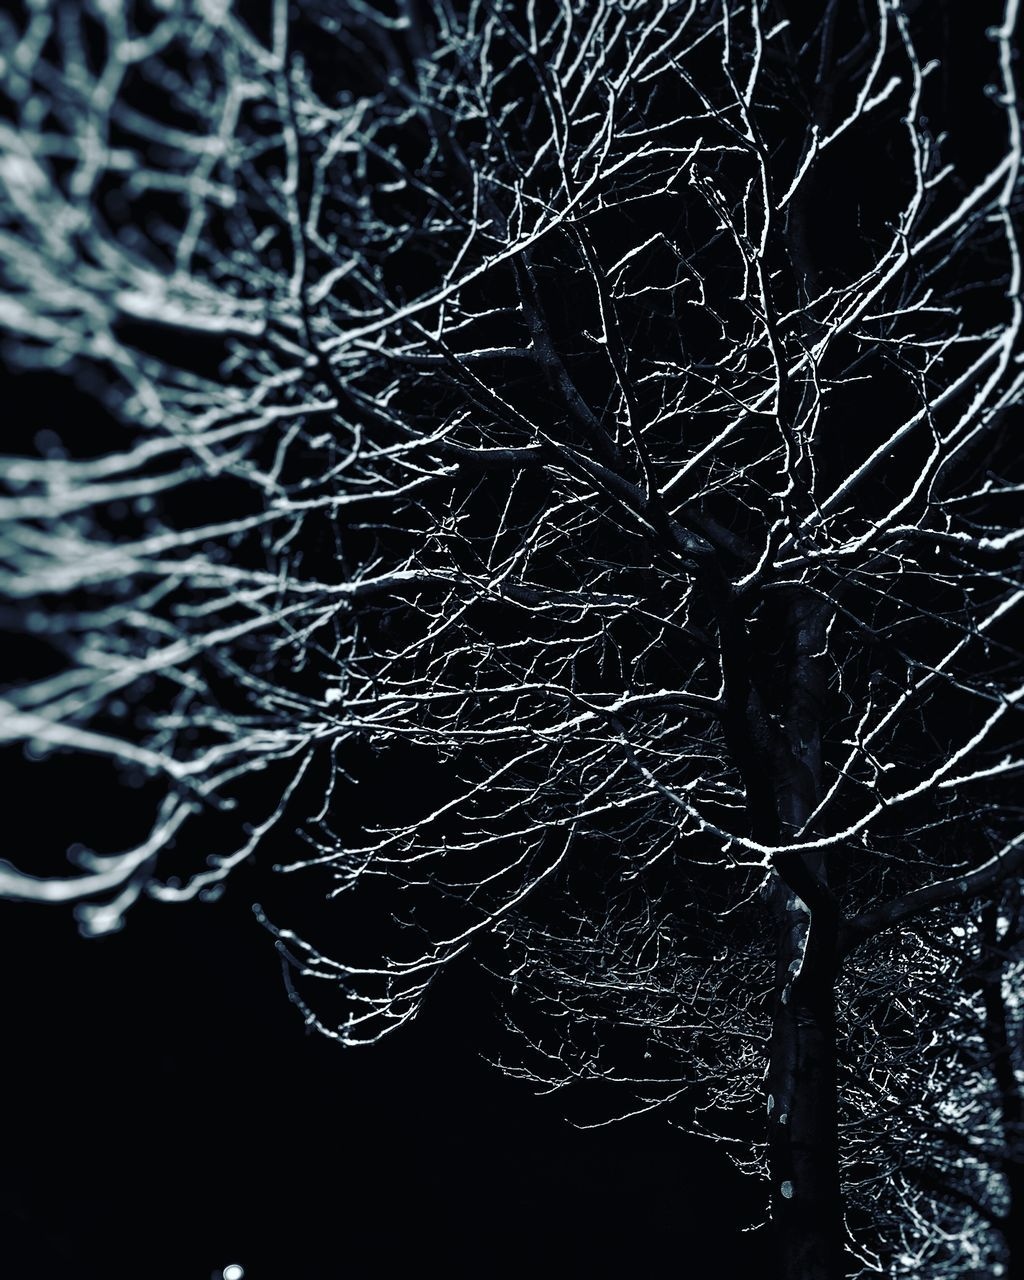 branch, bare tree, tree, no people, night, dead plant, tranquility, nature, outdoors, close-up, black background, complexity, beauty in nature, water, sky